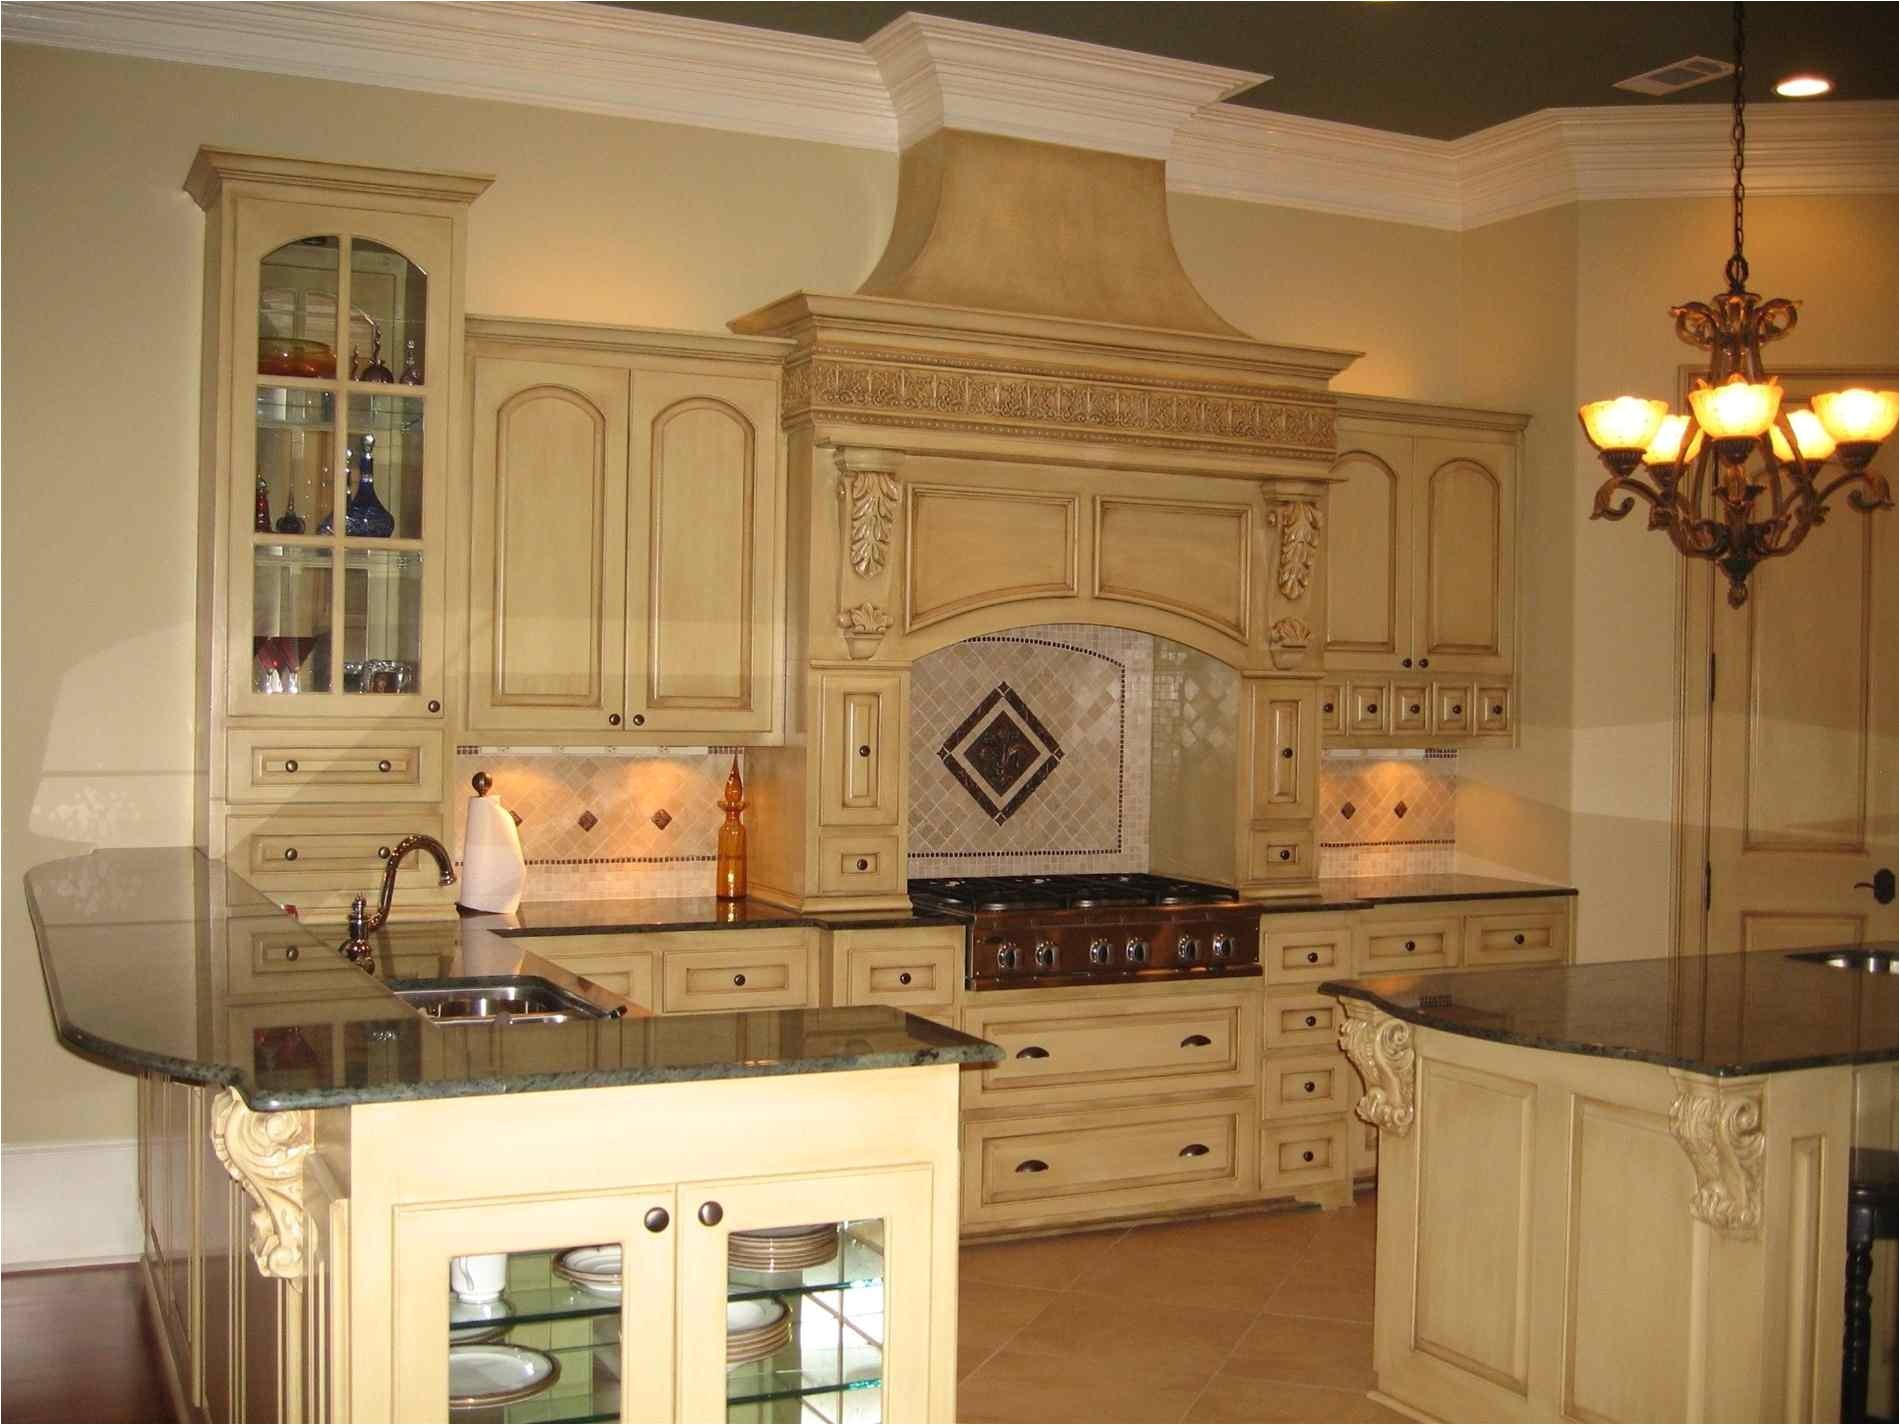 style your cabinet decorations cabinet decorating above kitchen cabinets tuscan style decorations ideas decorating above kitchen cabinets tuscan style for ideas decorating